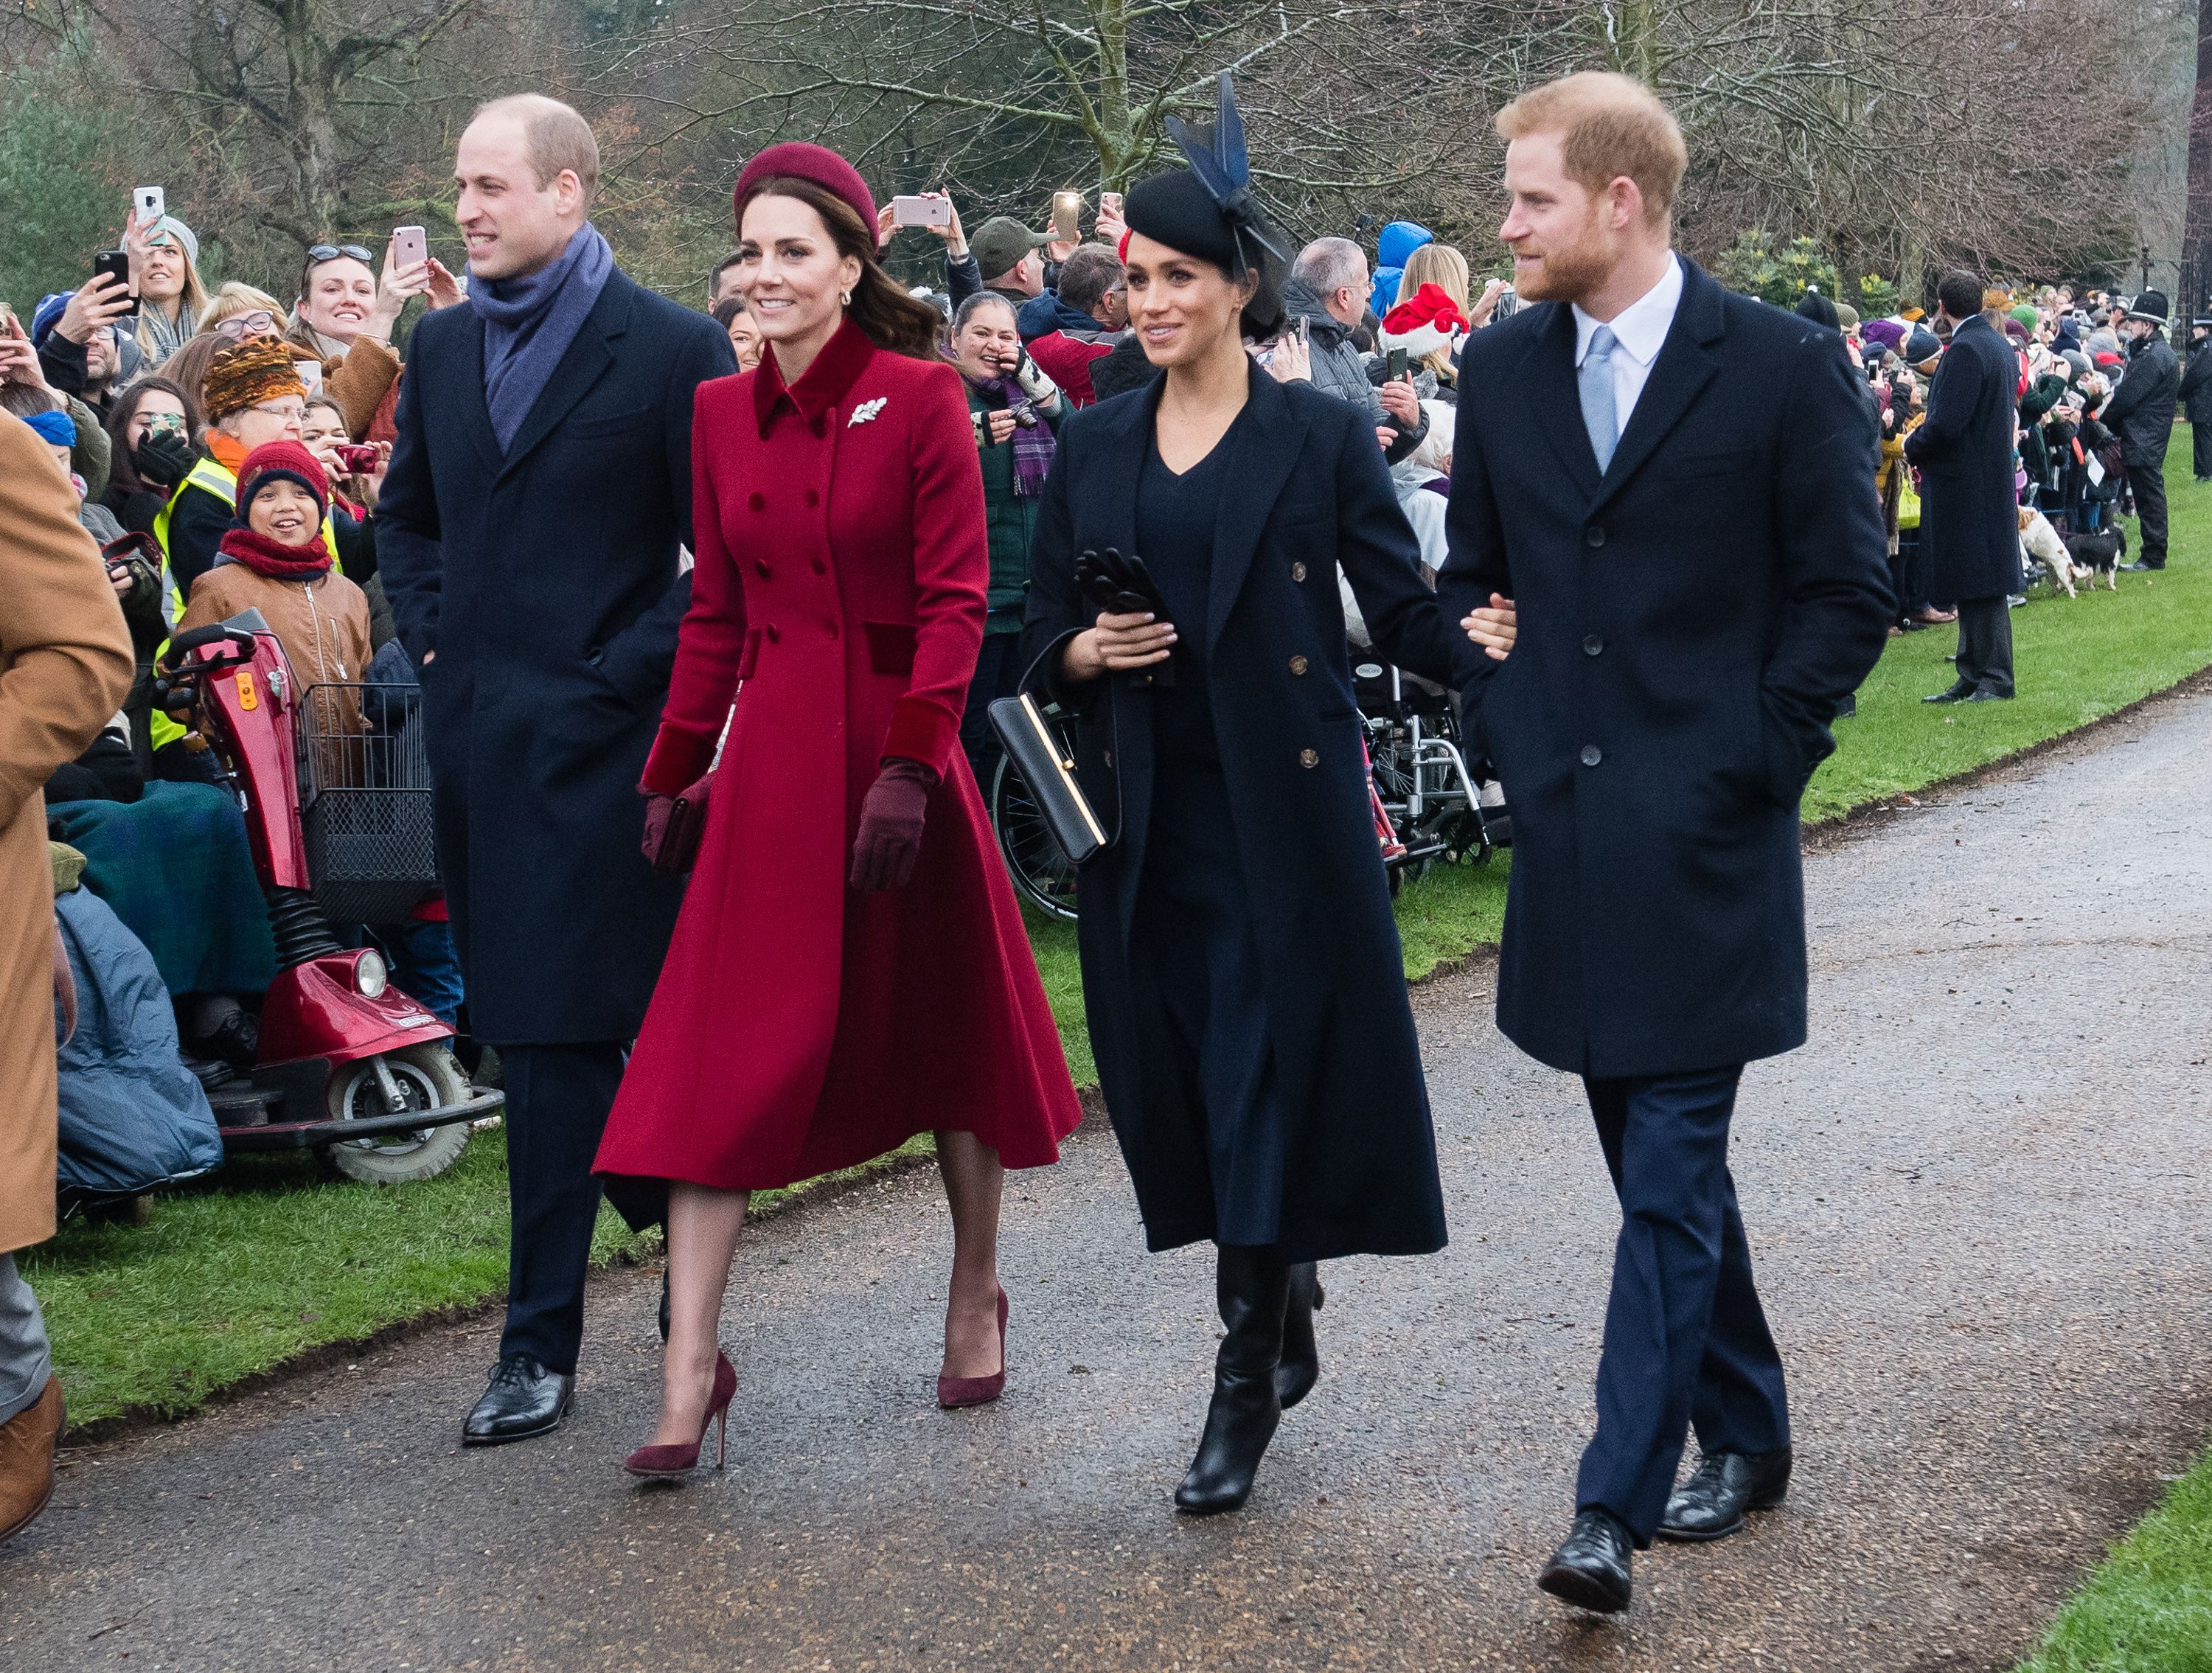 Meghan Markle reportedly cuts out Middleton from royal photographs